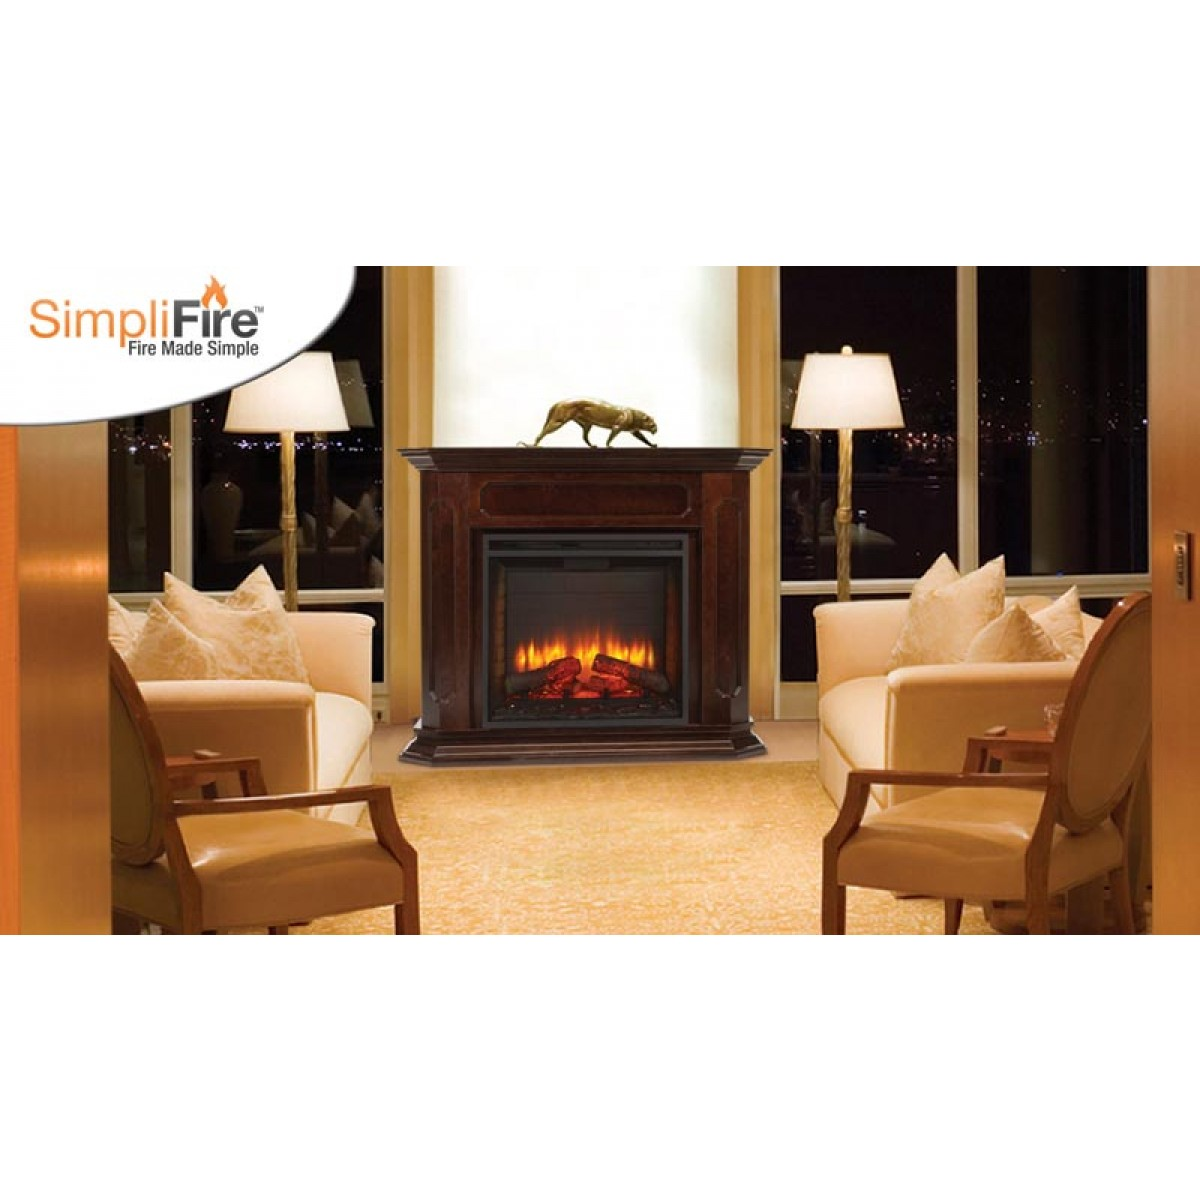 Majestic Sf Bi36 E 36 Built Intraditional Style Electric Fireplace